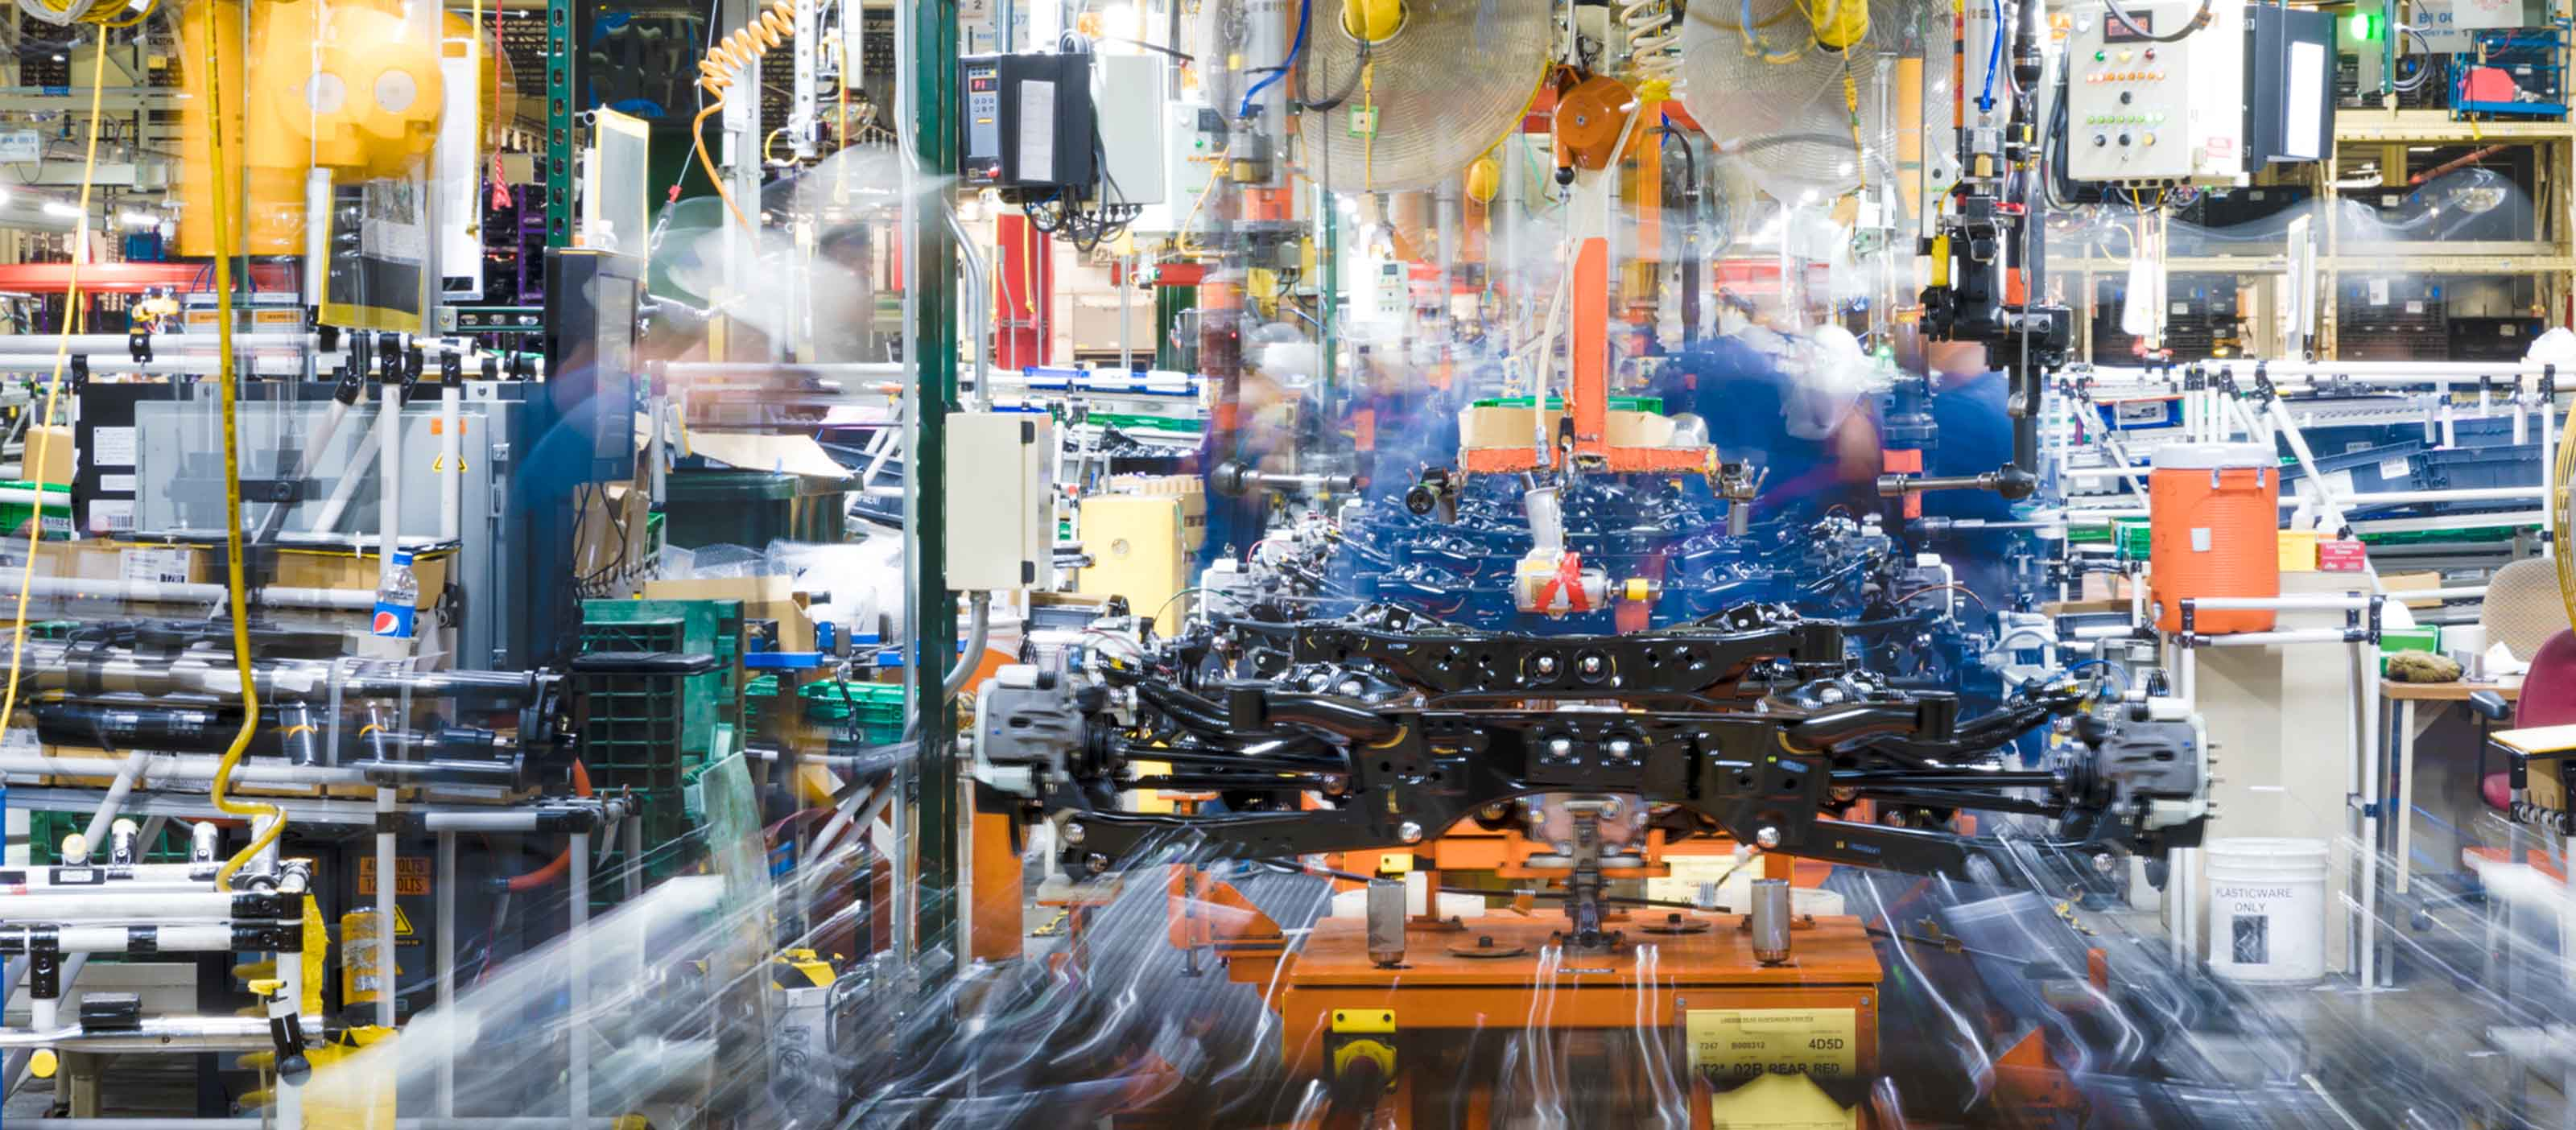 Plant Apps 8.0 helps manufacturers with speed and scale | GE Digital